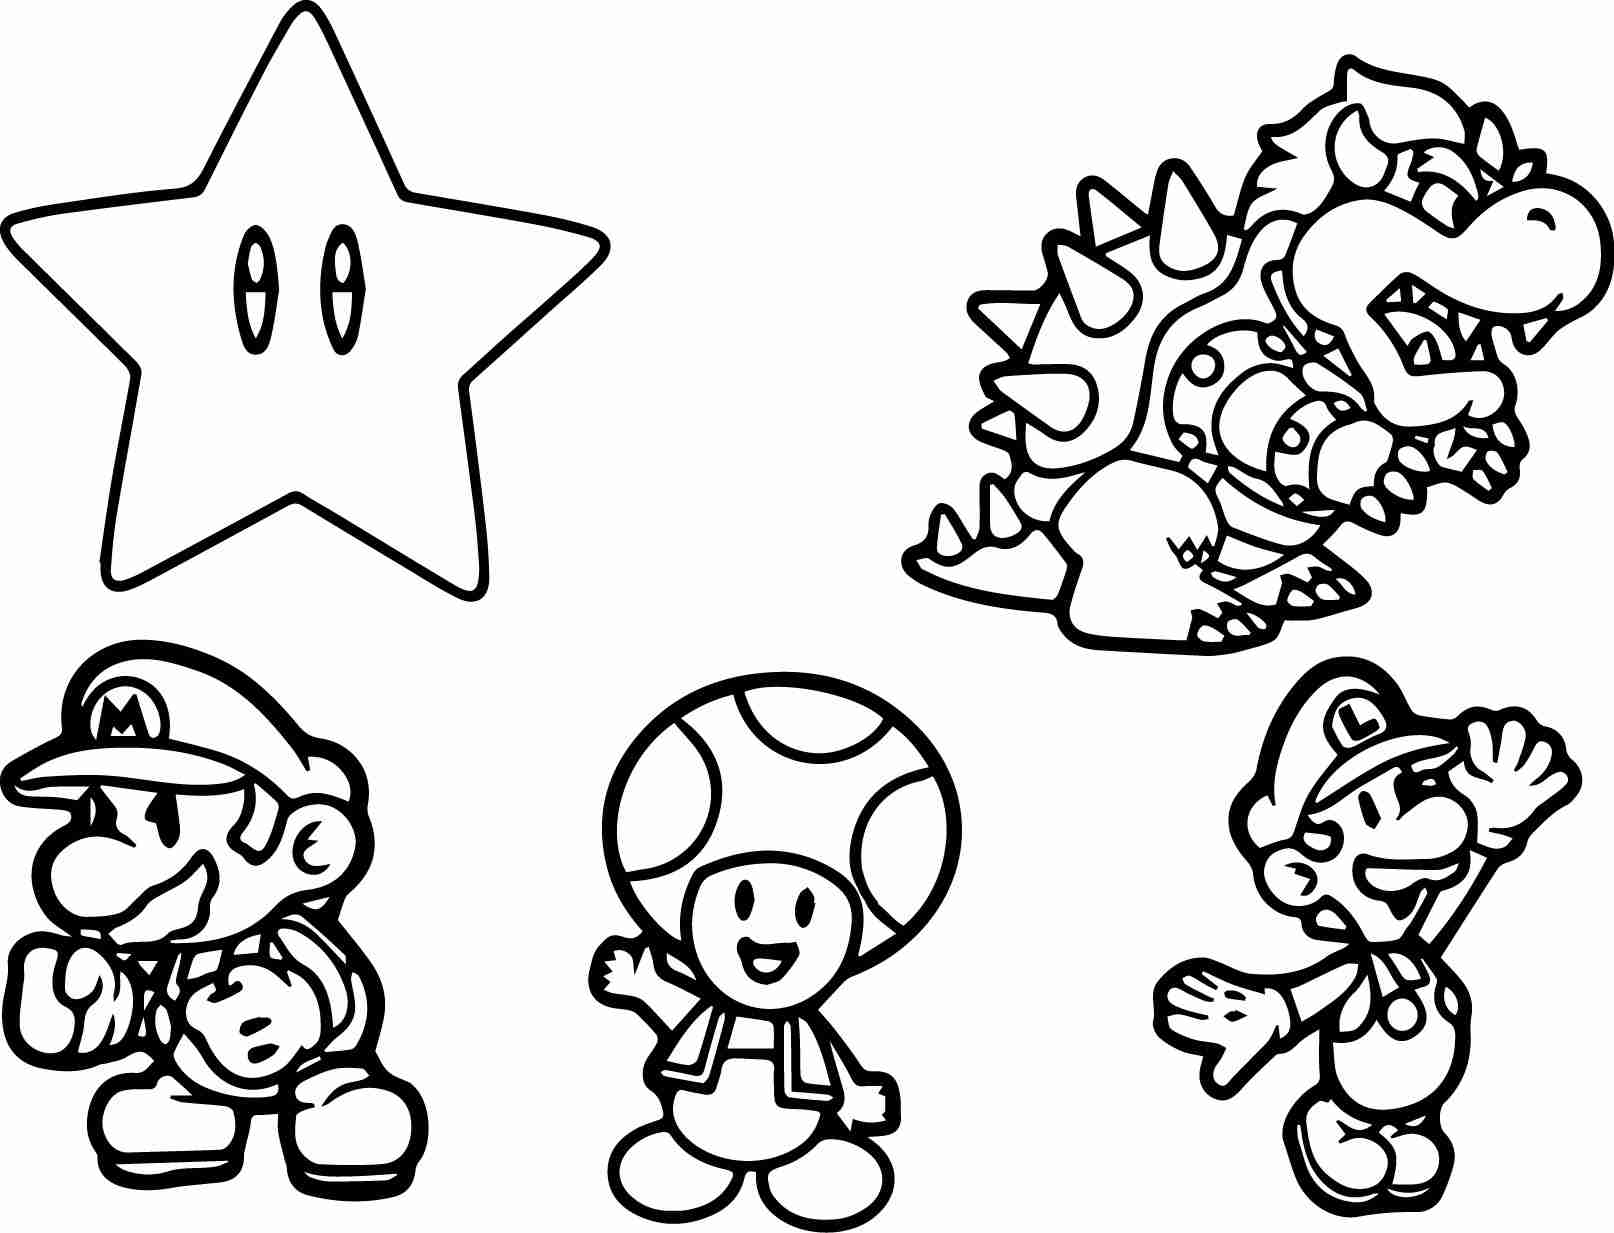 Super Mario Characters Coloring Pages At Getcolorings